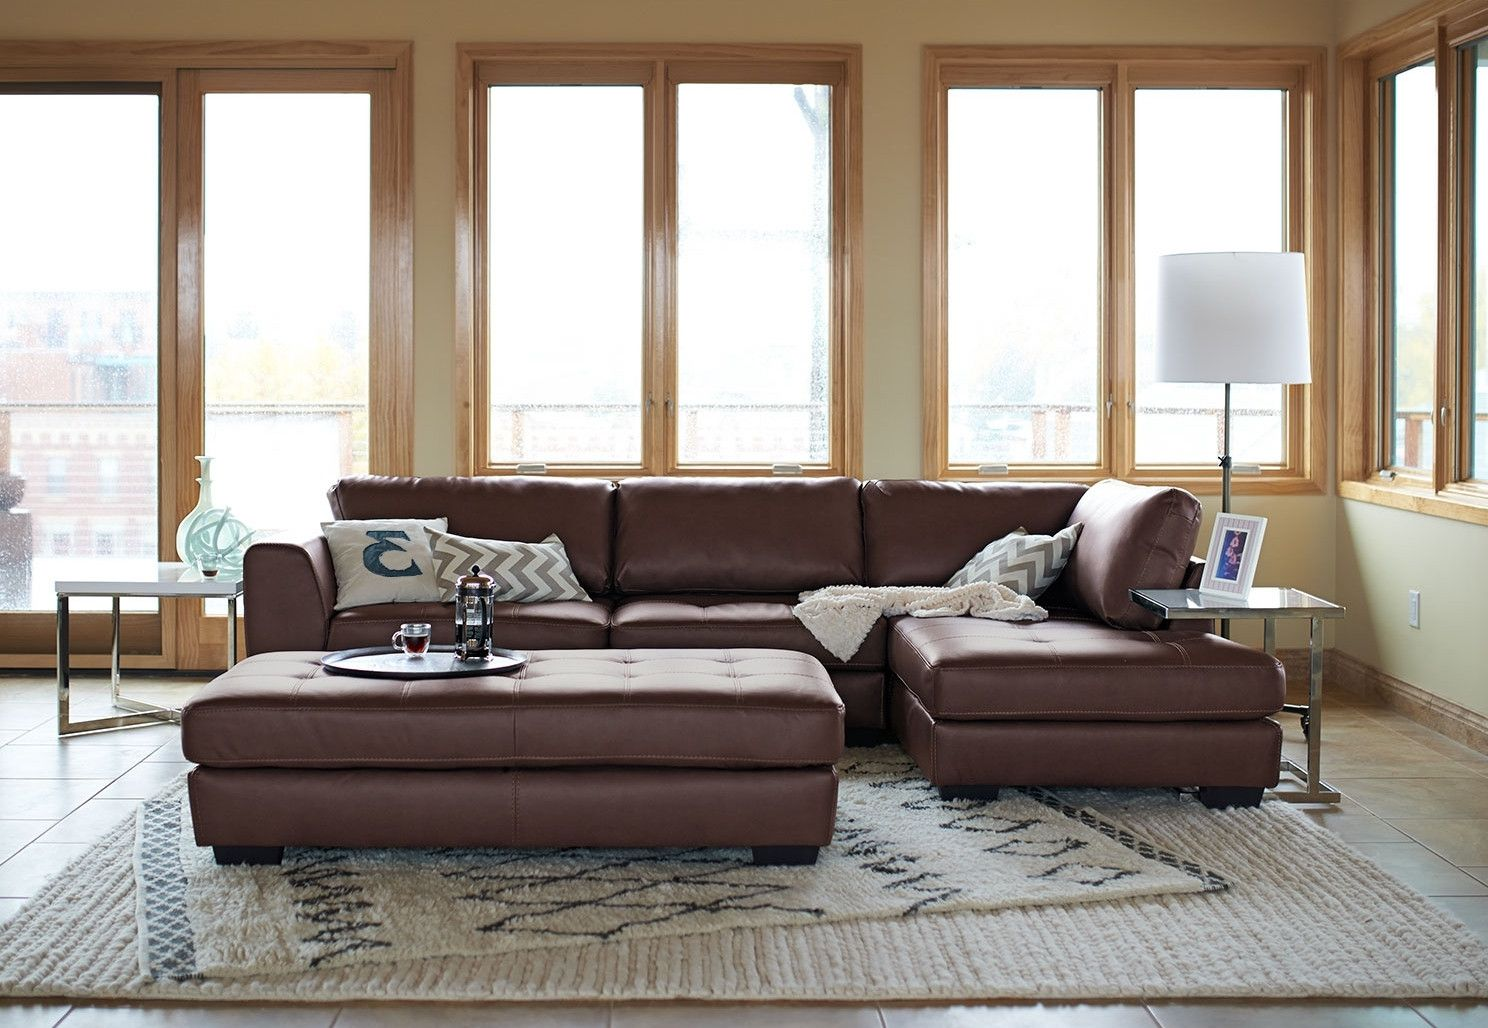 11 Smart Designs Of How To Make 3 Piece Living Room Set Cheap In 2021 Cheap Living Room Sets Affordable Living Room Set Living Room Sets Furniture